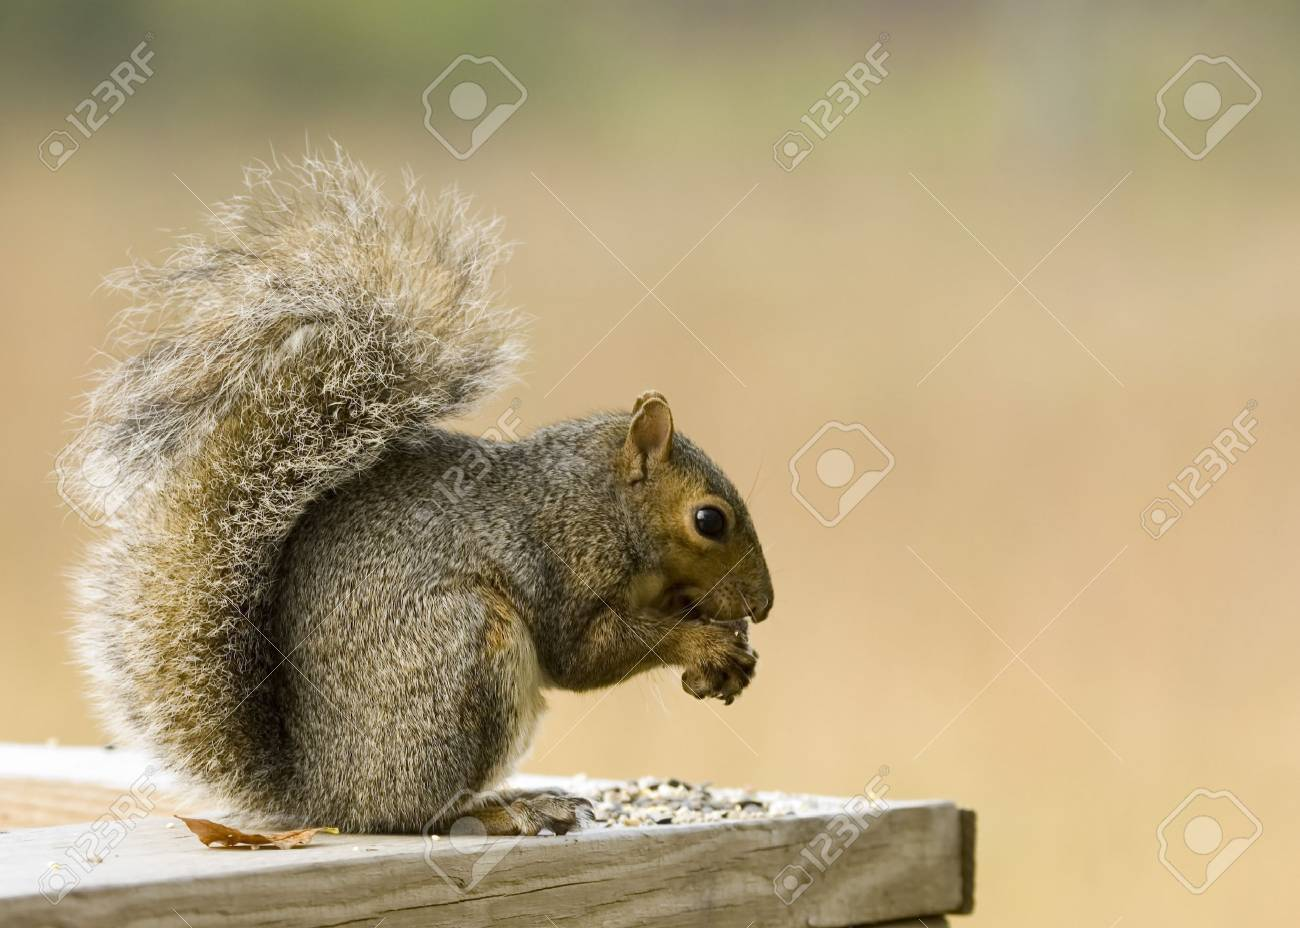 squirrel eating bird seed Stock Photo - 1831980